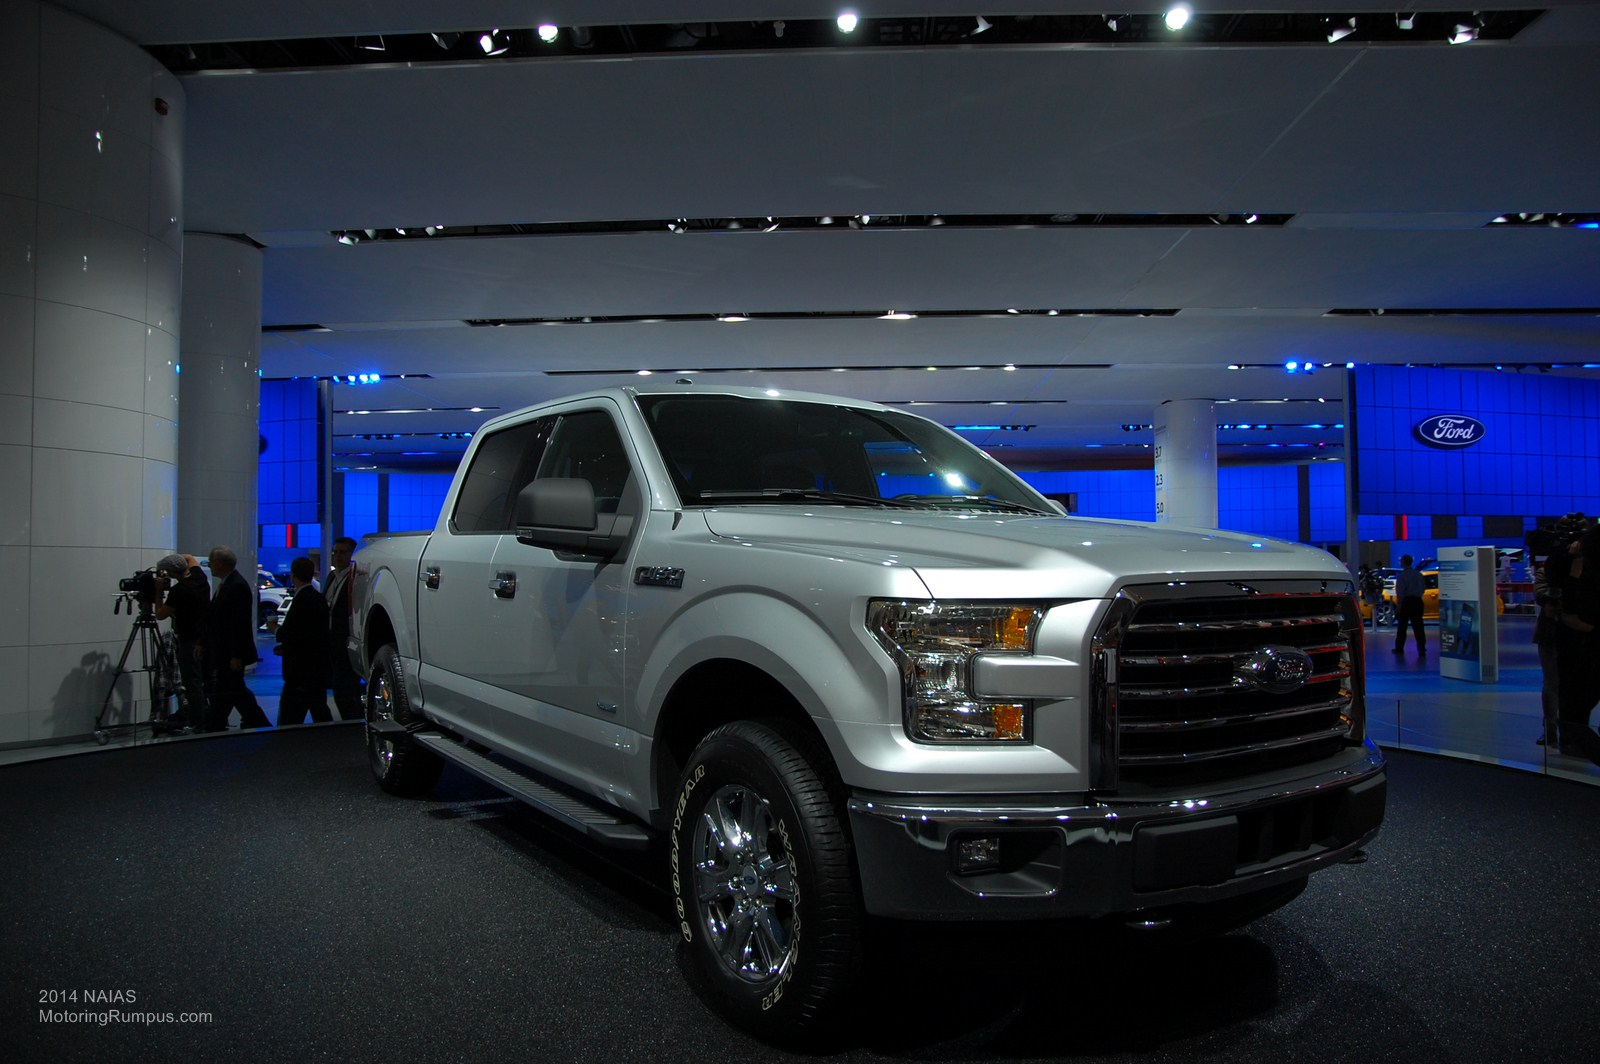 2014 NAIAS - 2015 Ford F-150